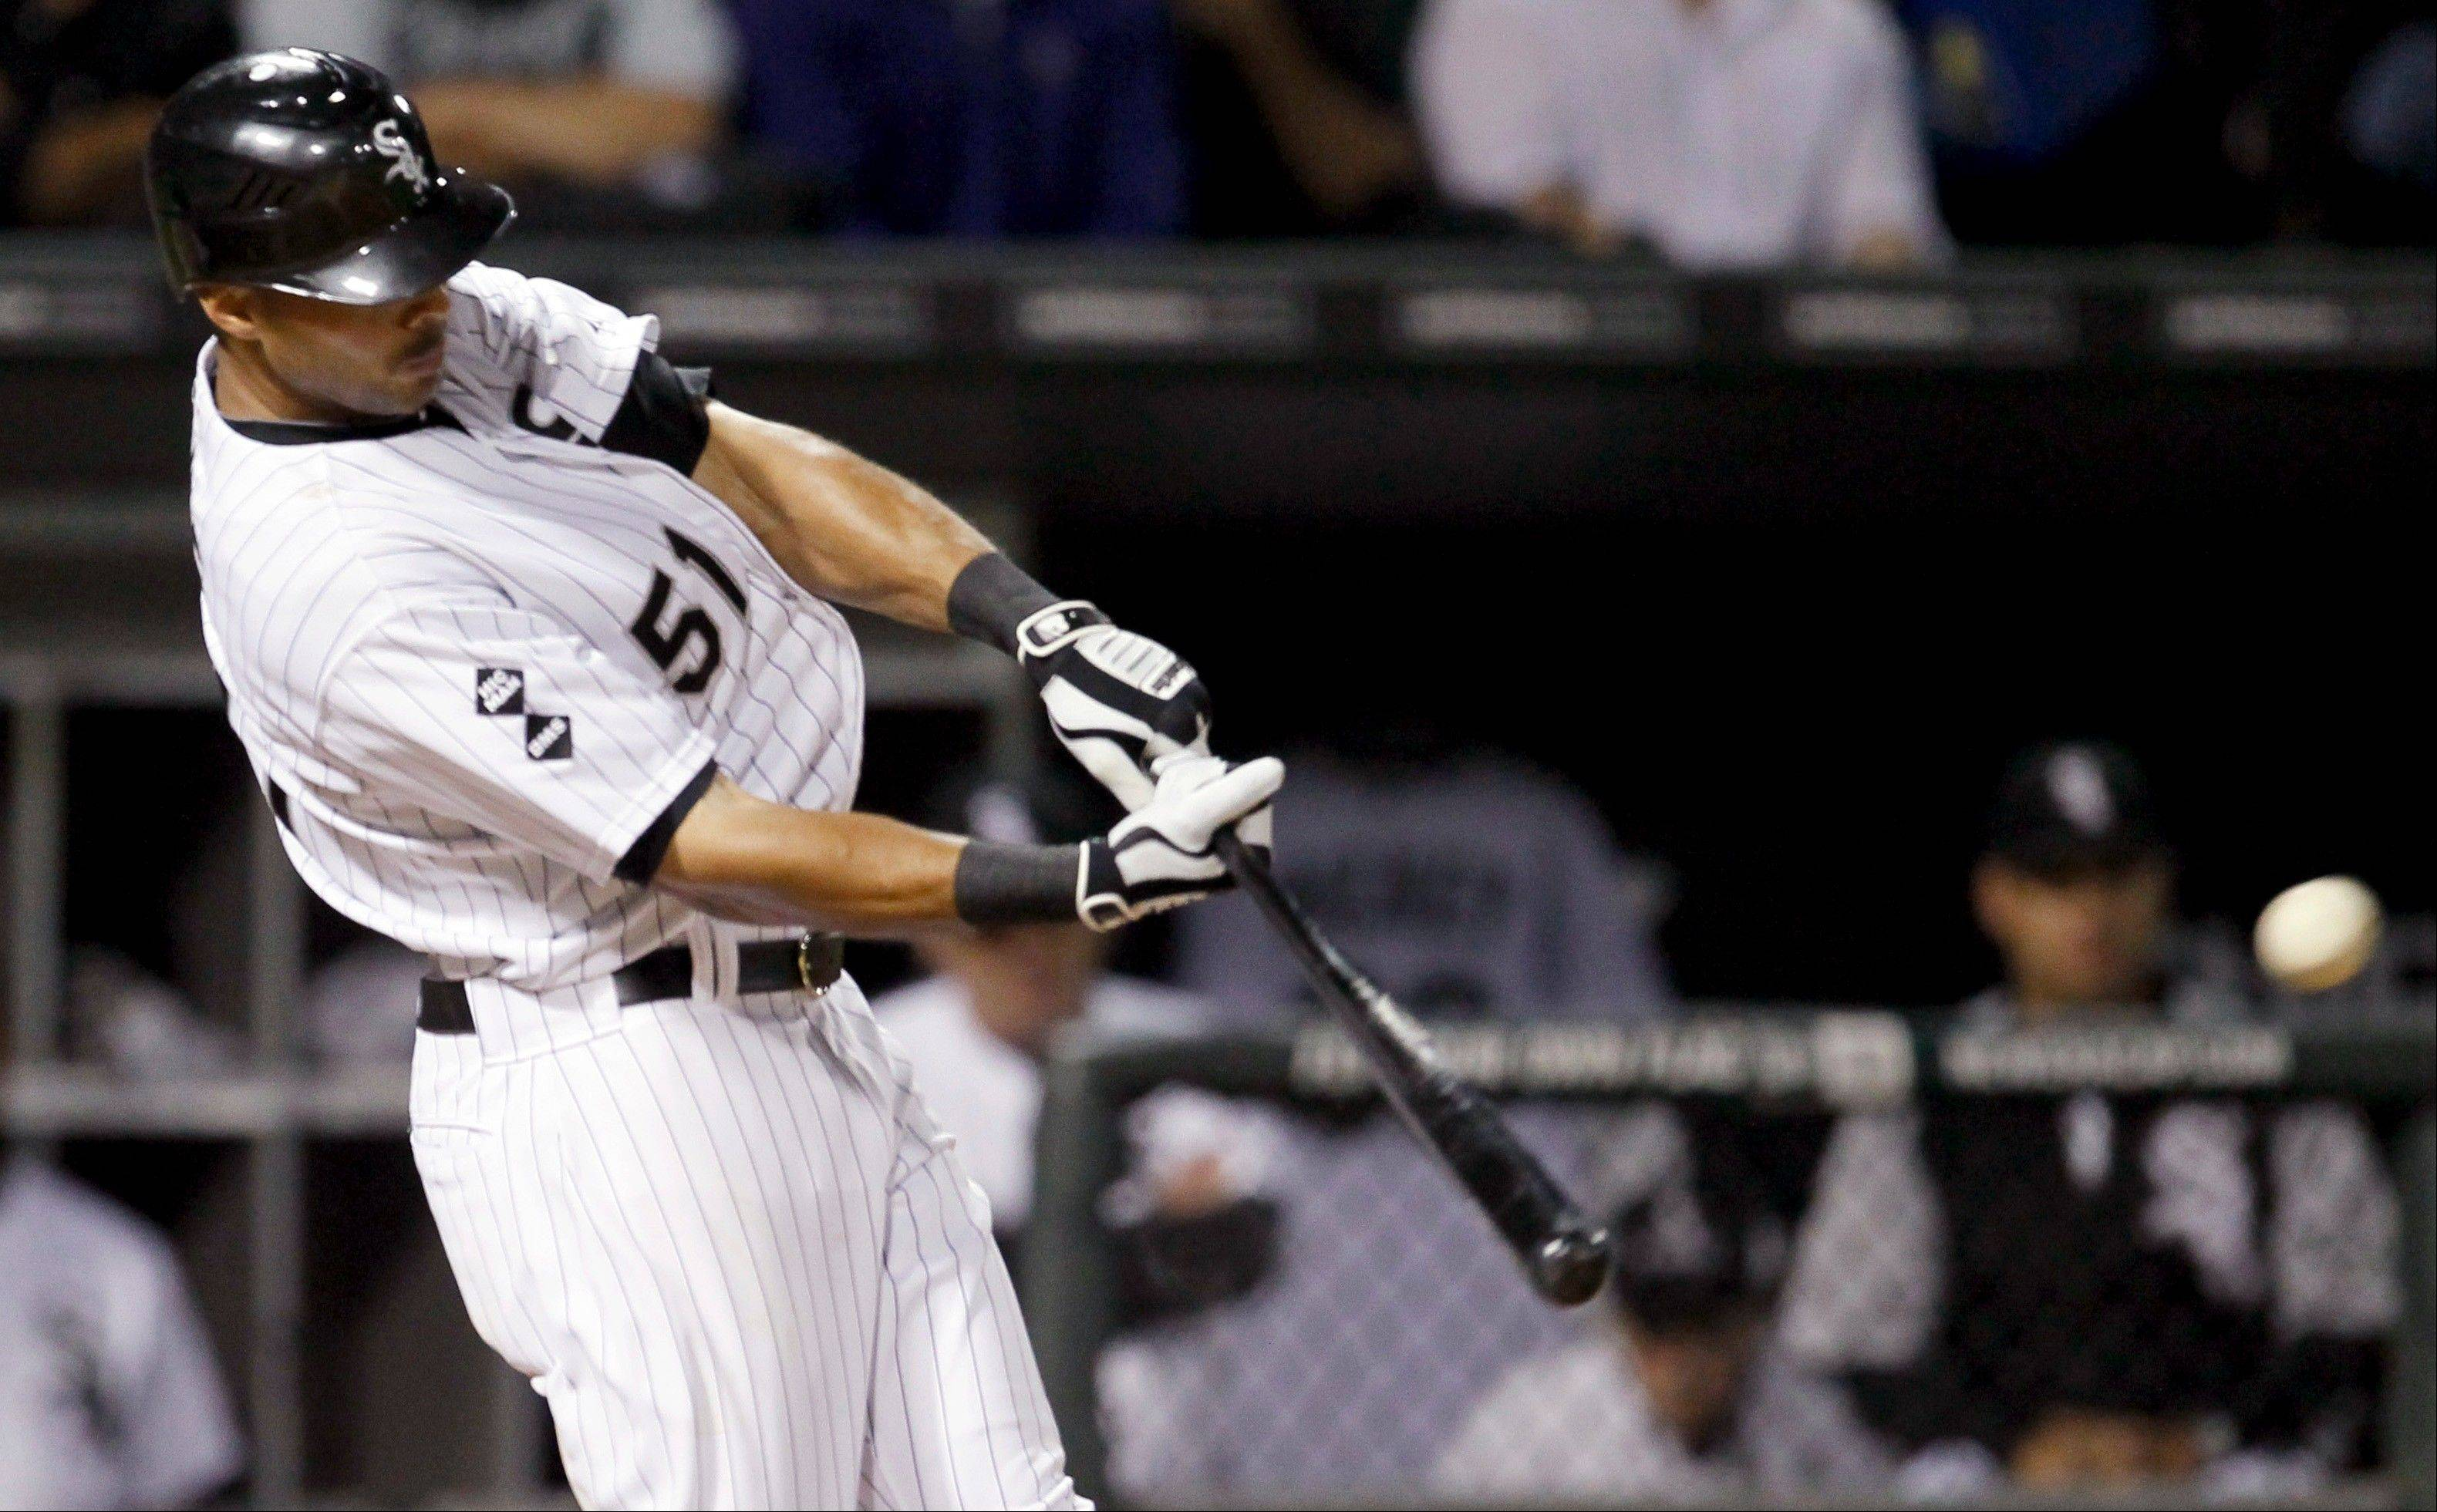 The White Sox' Alex Rios hits a 3-run homer against Detroit.